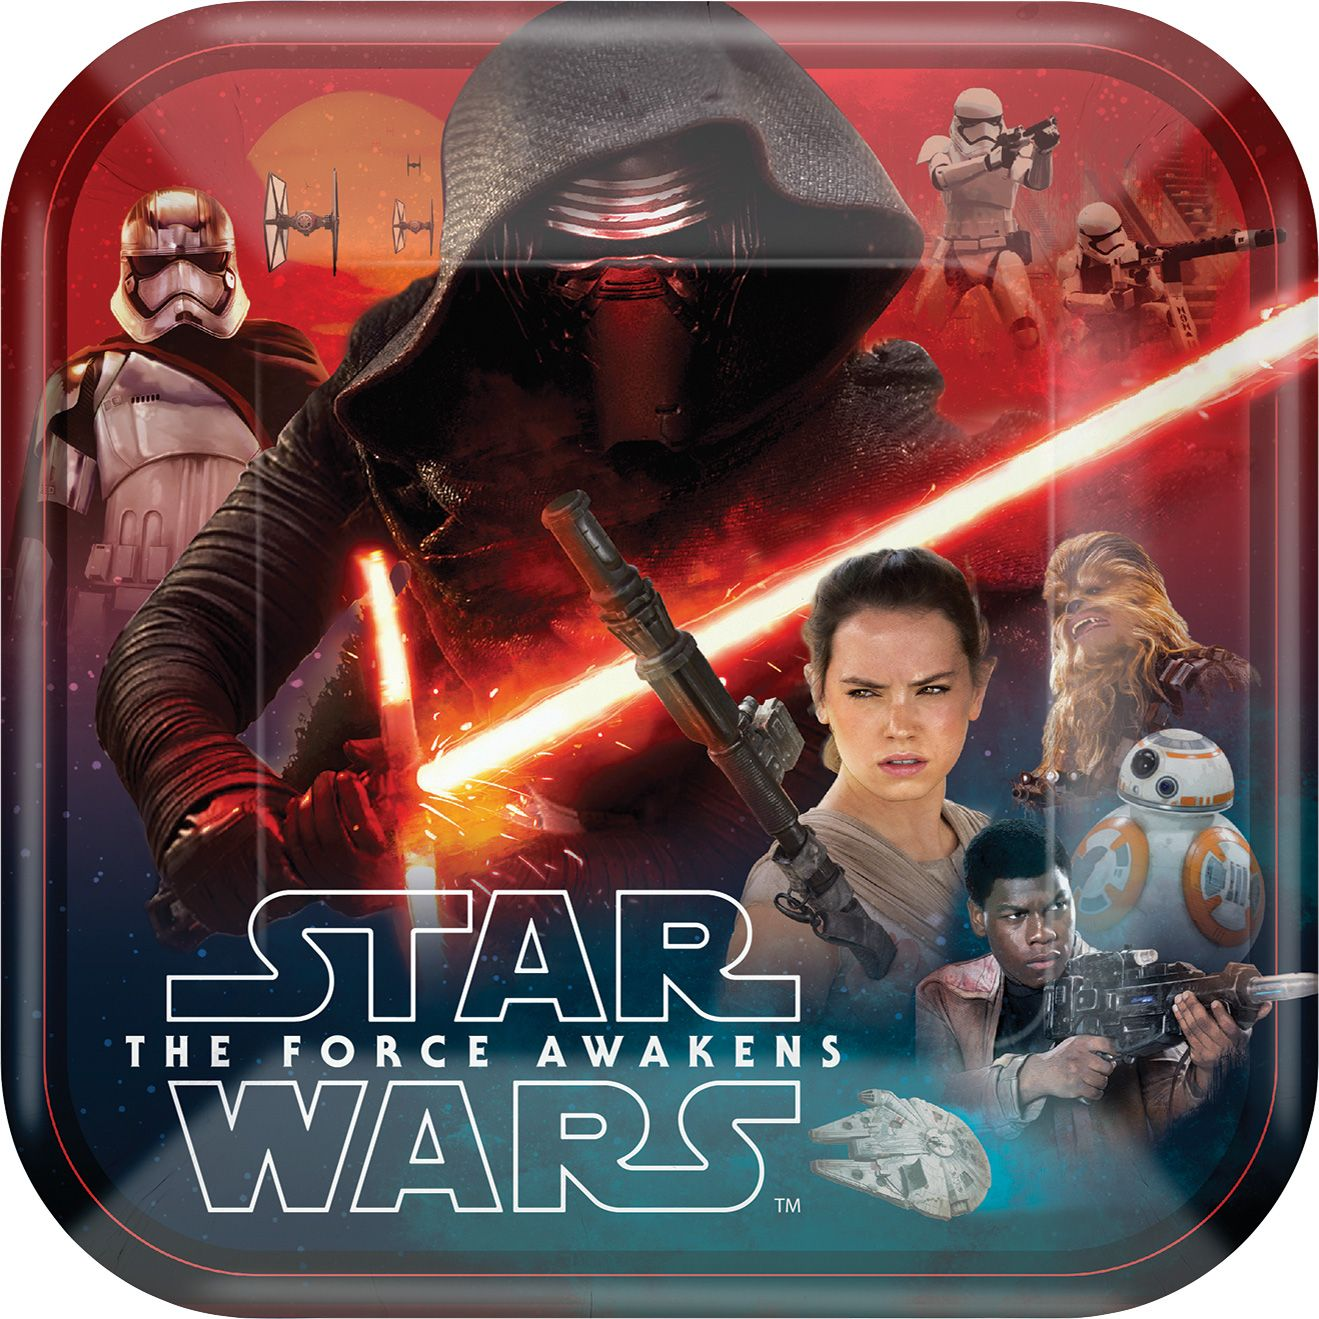 "Star Wars Ep Vll 9"" Luncheon Plate (8 Count) BB551506"